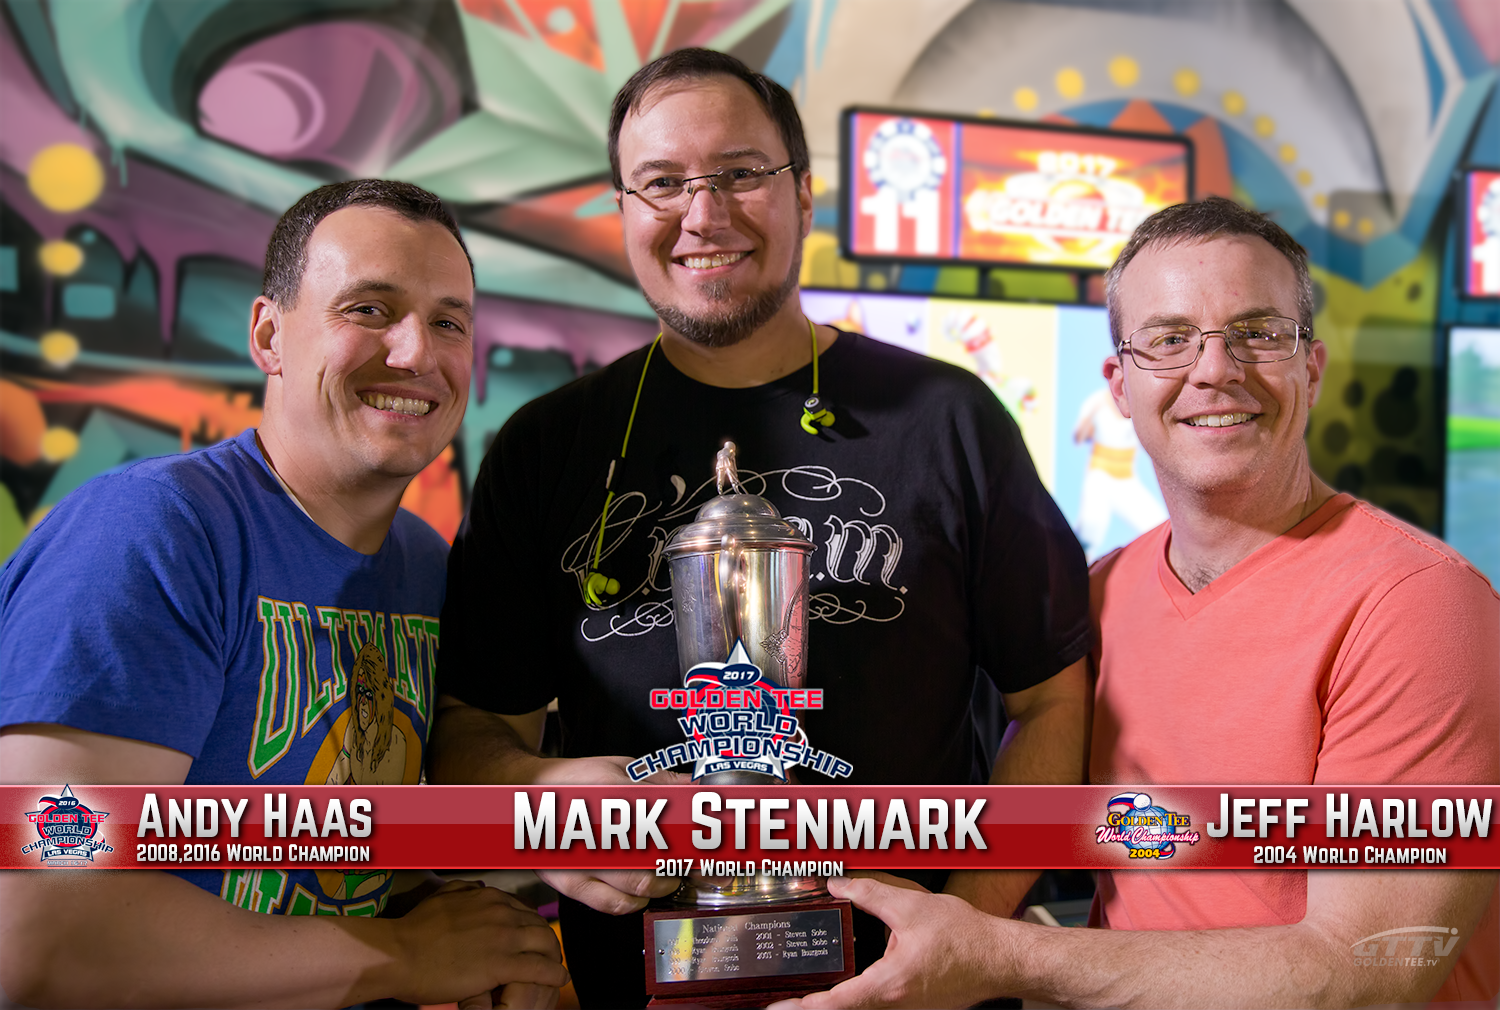 Former World Champions Andy Haas (left) and Jeff Harlow (right) hold up the Hodgson-Zielinski trophy with the 2017 Champion, Mark Stenmark